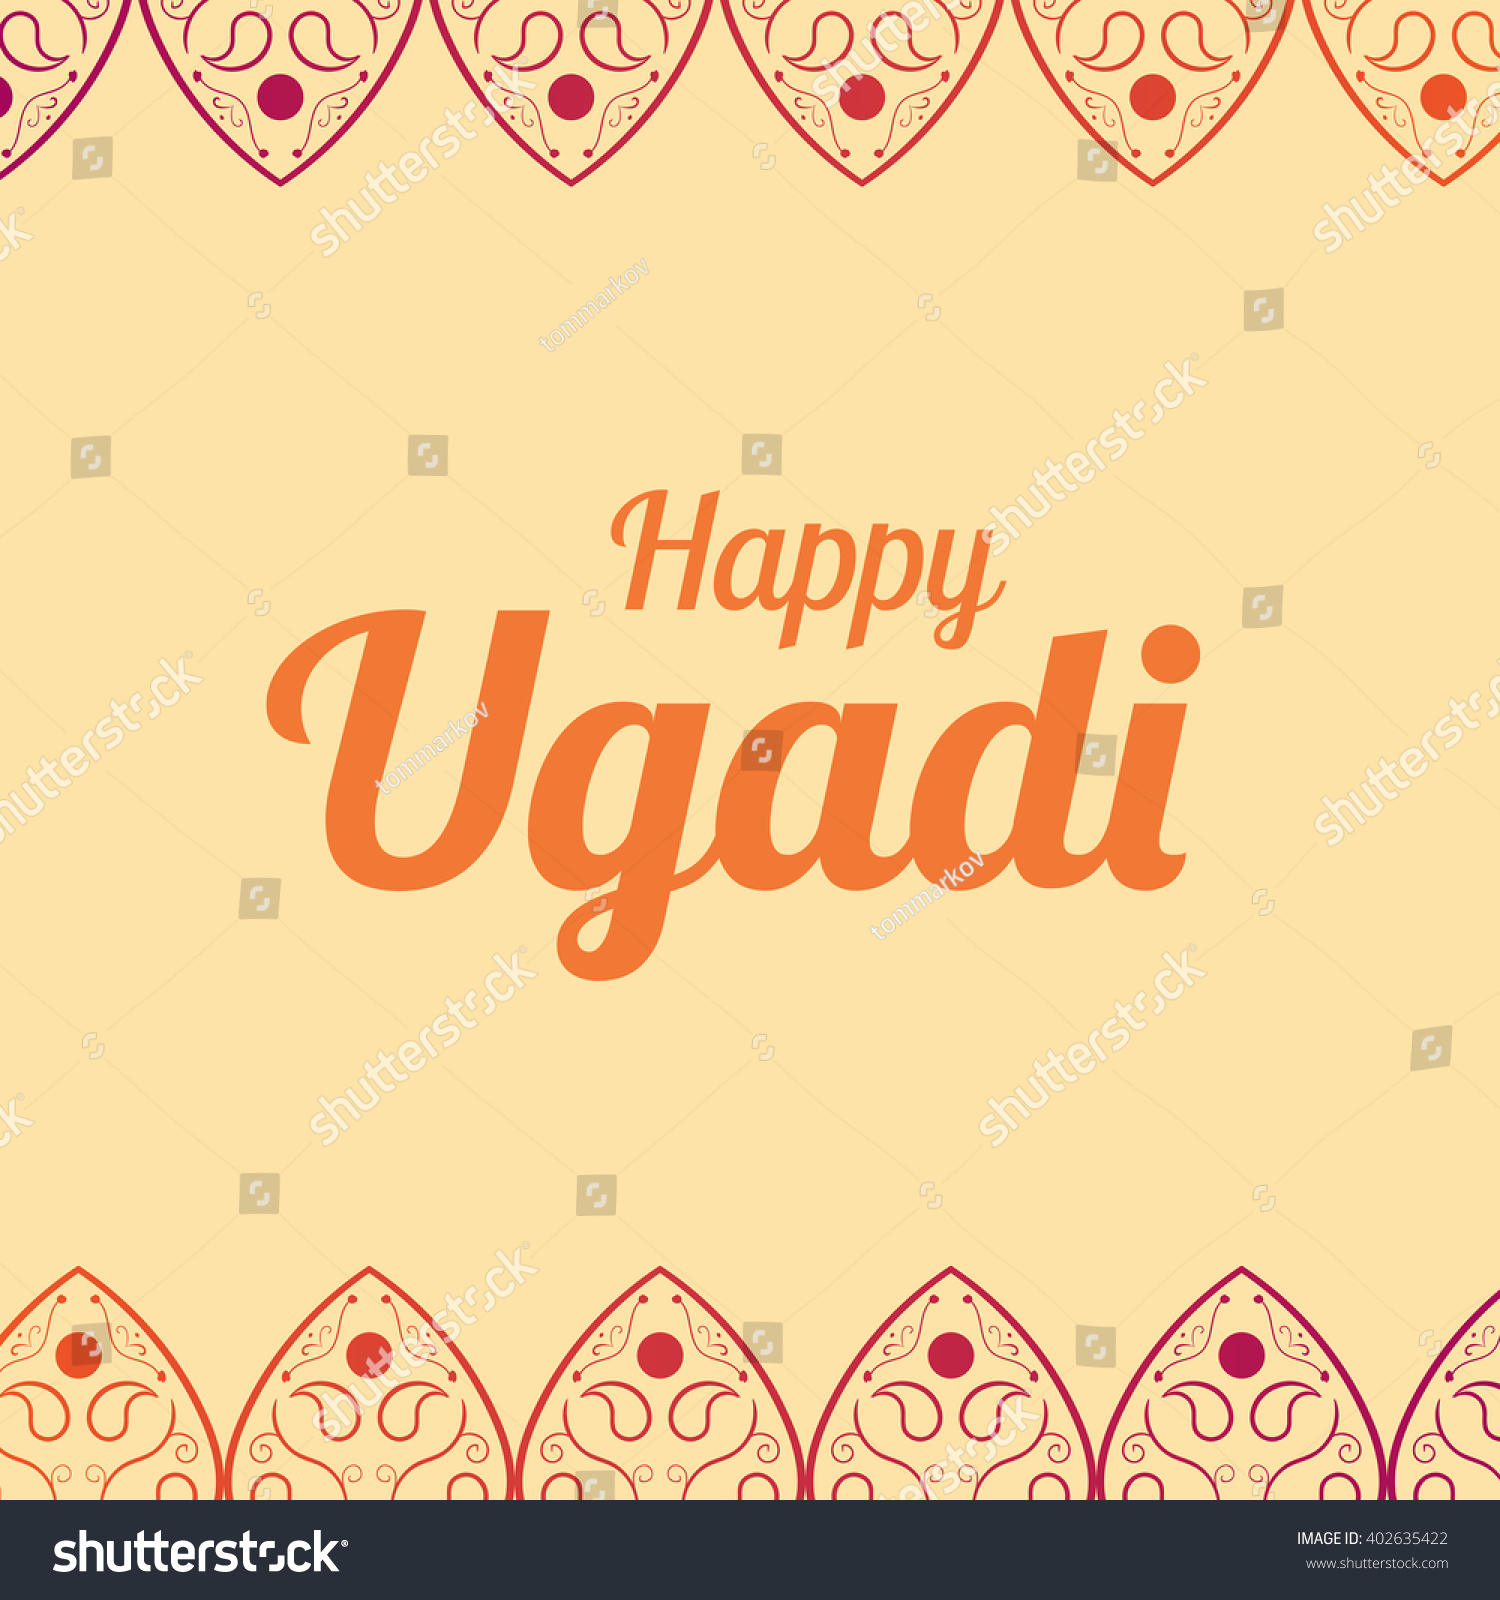 happy ugadi card template holiday poster stock vector  happy ugadi card template holiday poster vector